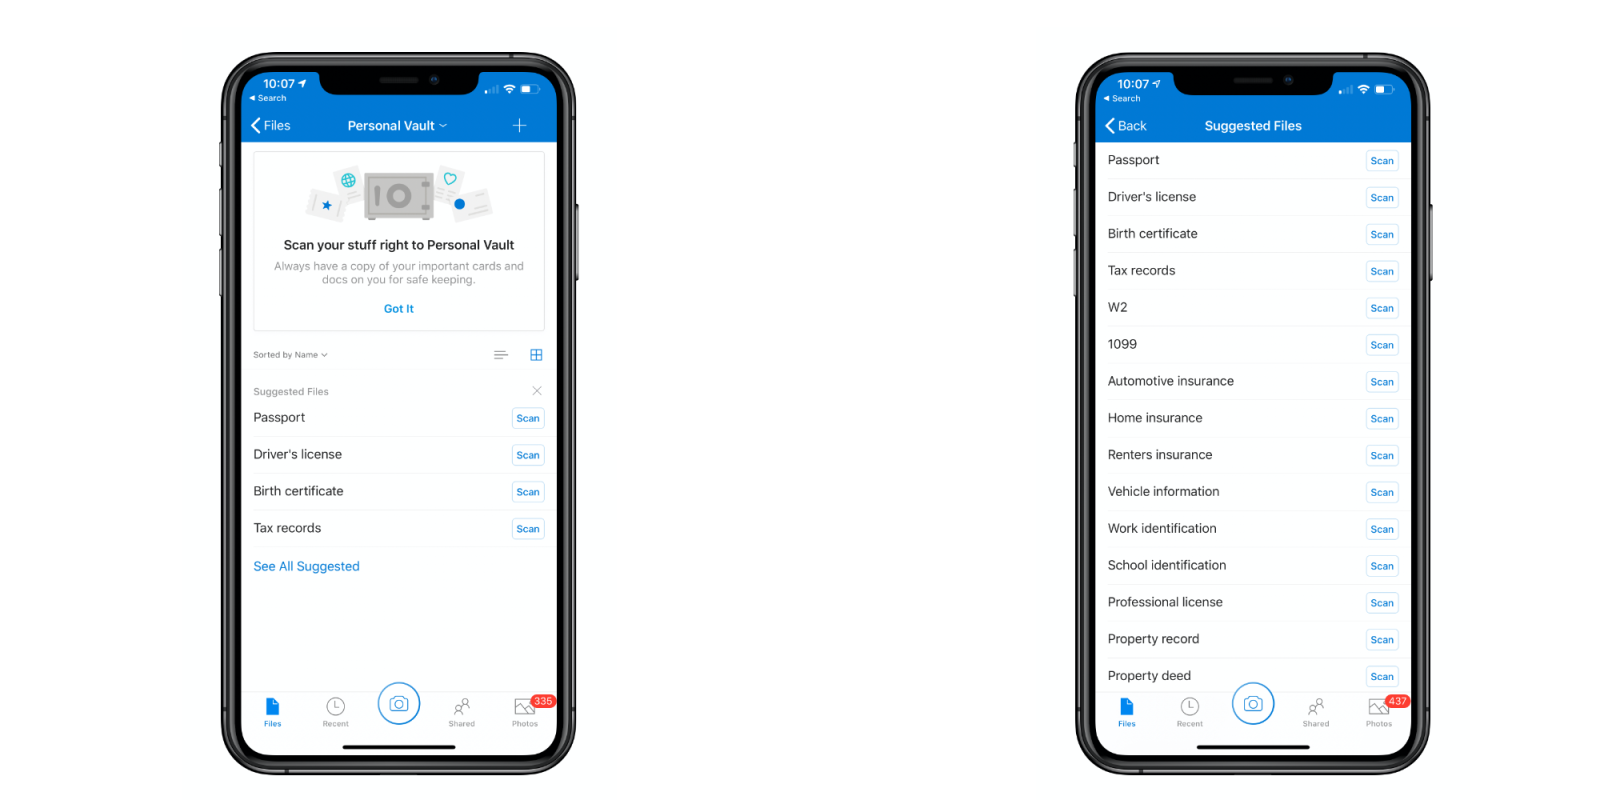 Comment: Apple should add a secure iCloud Drive folder with Face ID and Touch ID support